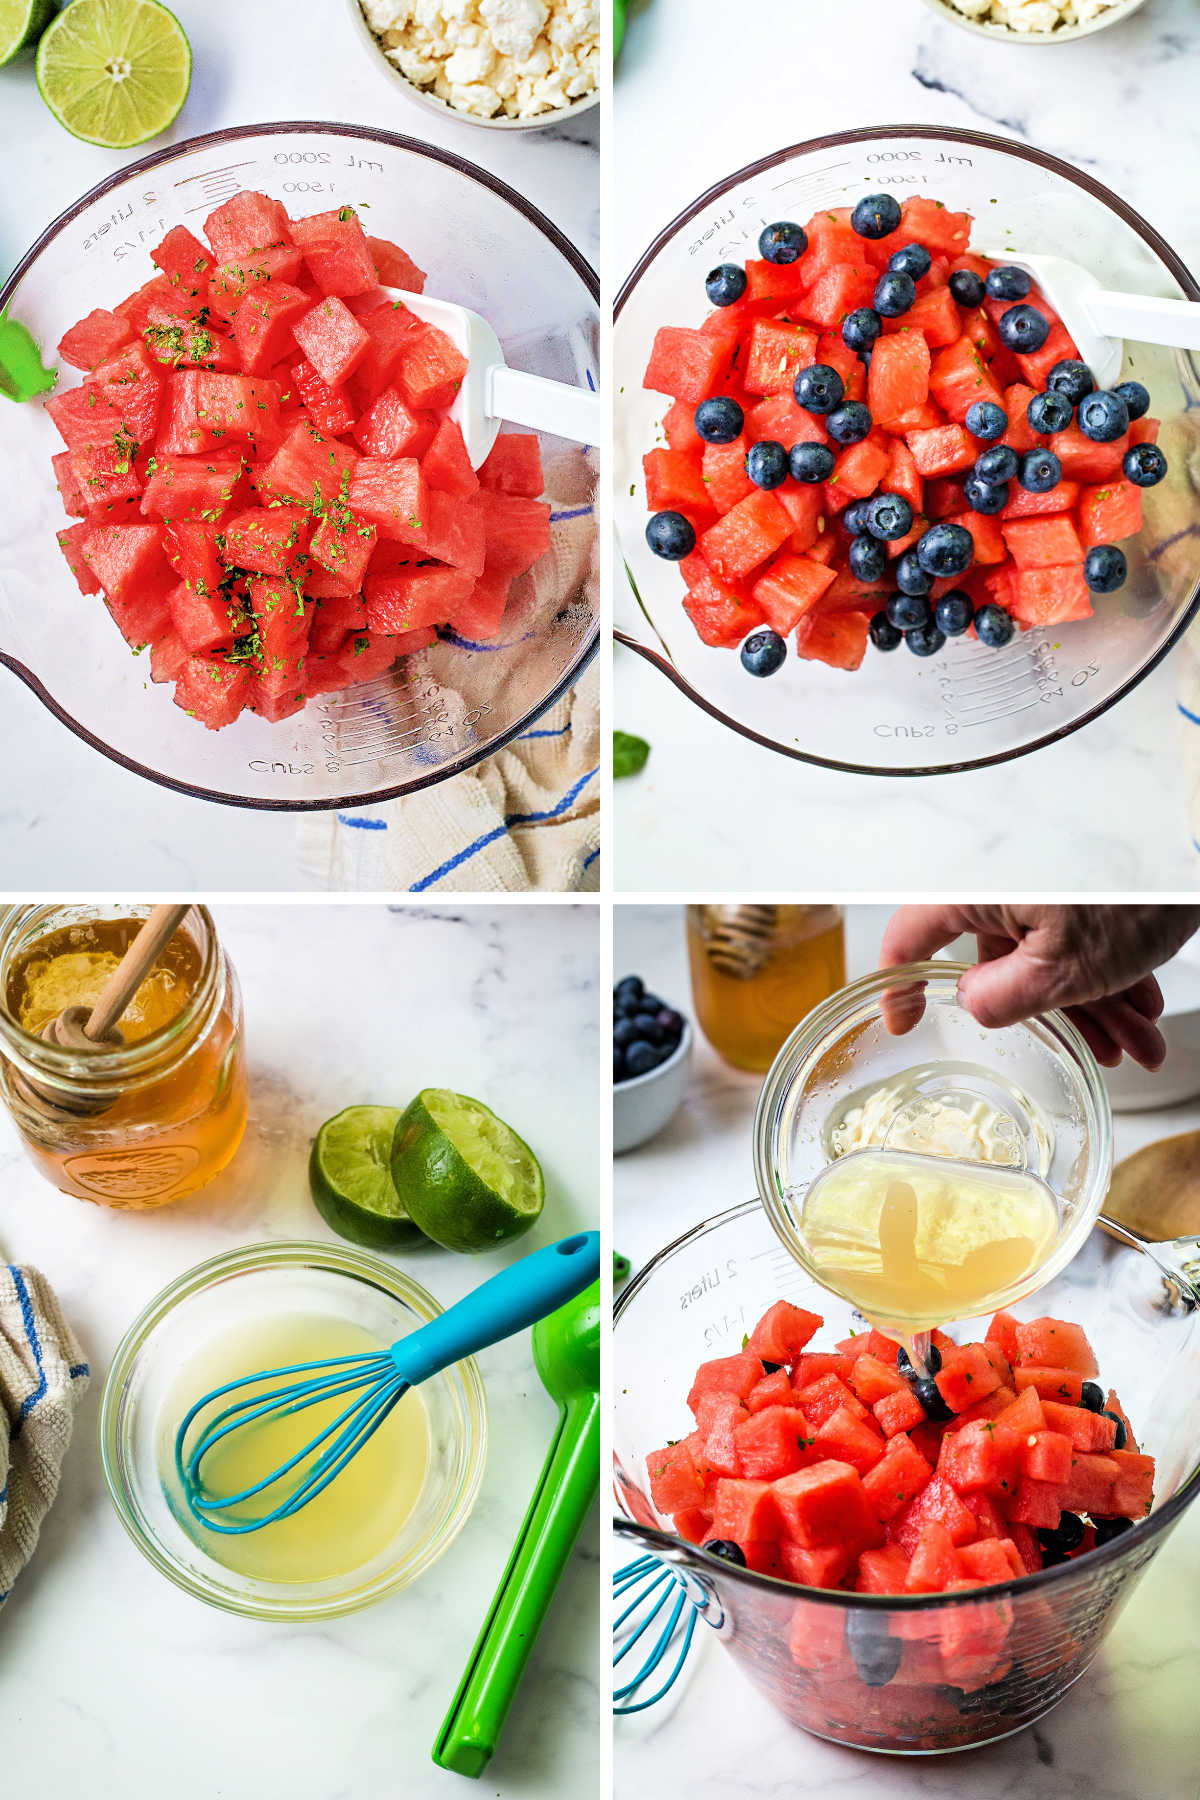 process steps for making watermelon feta salad: cube watermelon and toss with chopped mint; add blueberries to bowl; whisk together lime juice and honey; pour mixture over fruit in bowl.